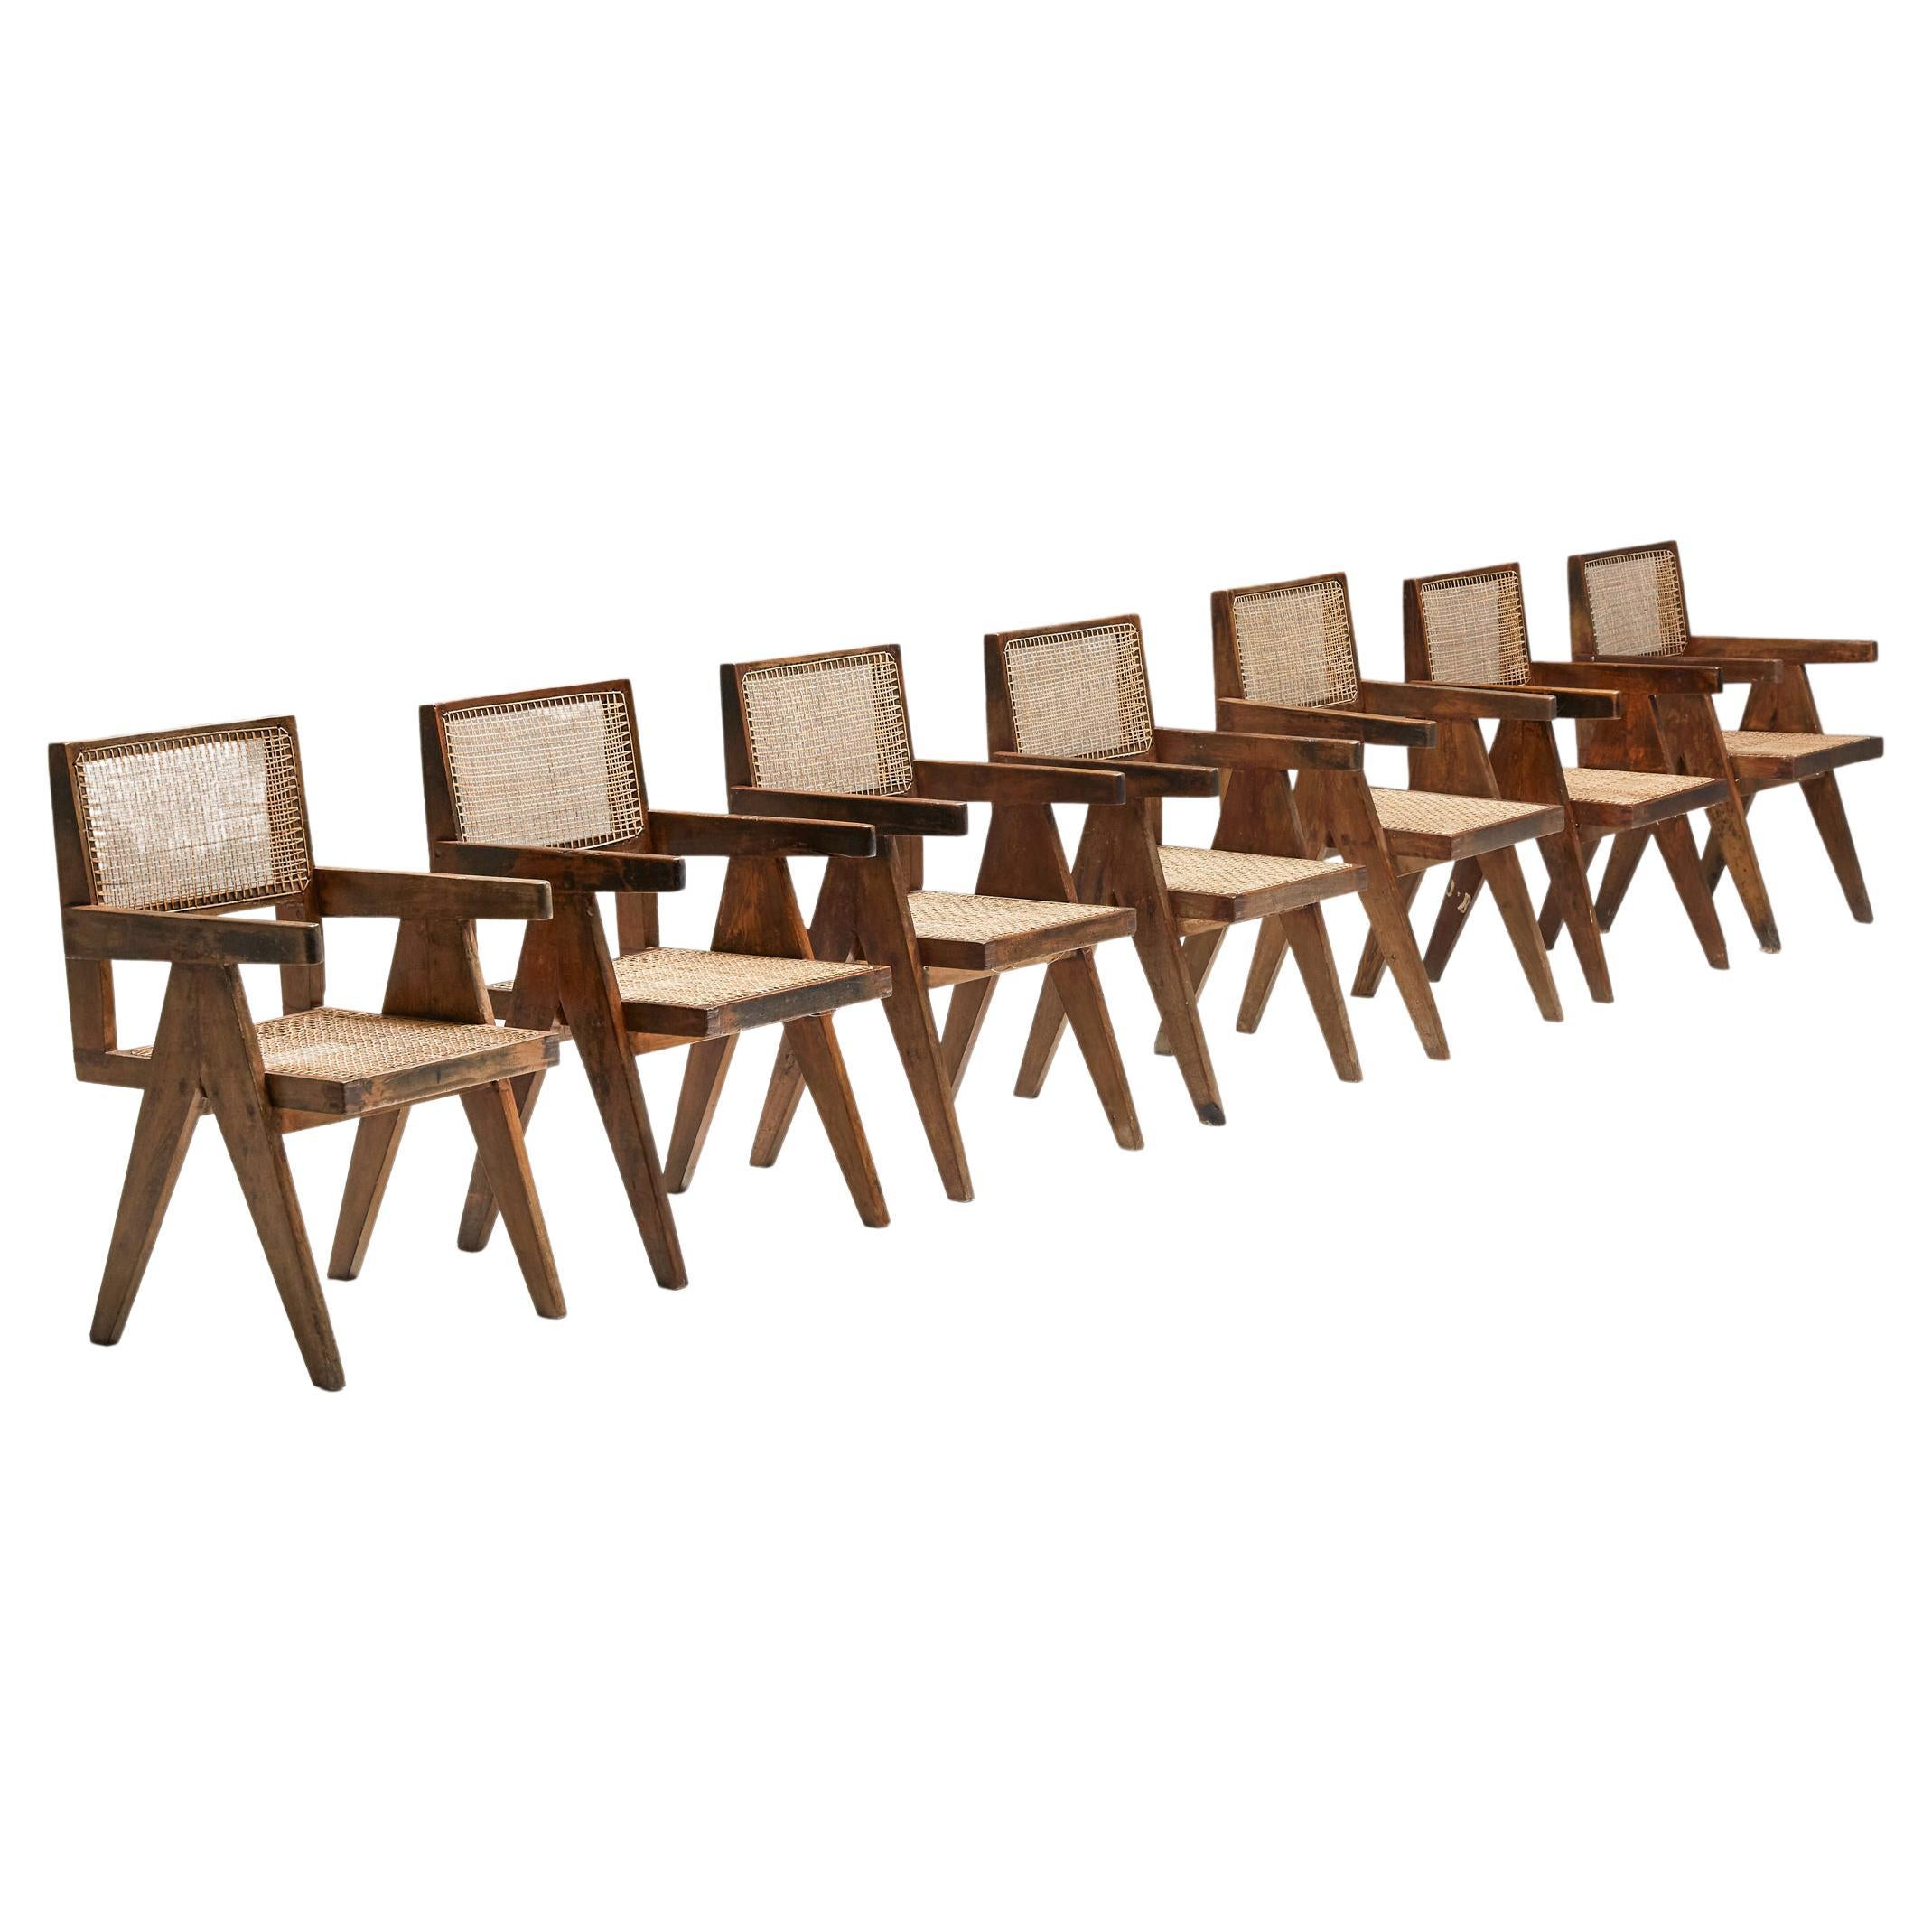 Pierre Jeanneret Set of 7 Office/Dining Cane Chairs, Chandigarh PJ-SI-28-B